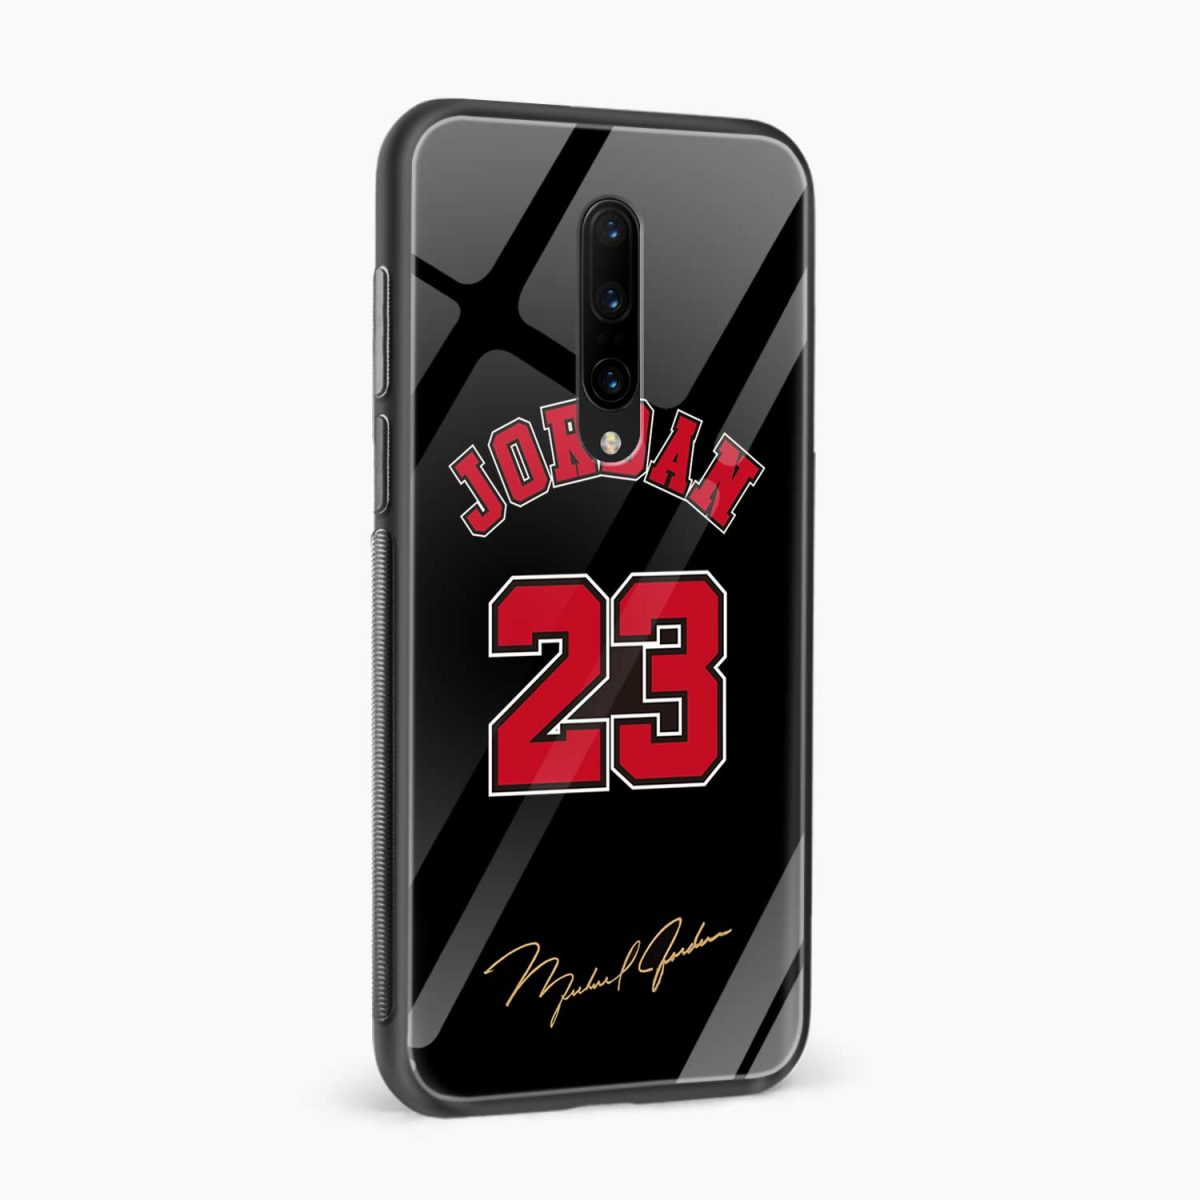 jordan 23 side view oneplus 7 pro back cover